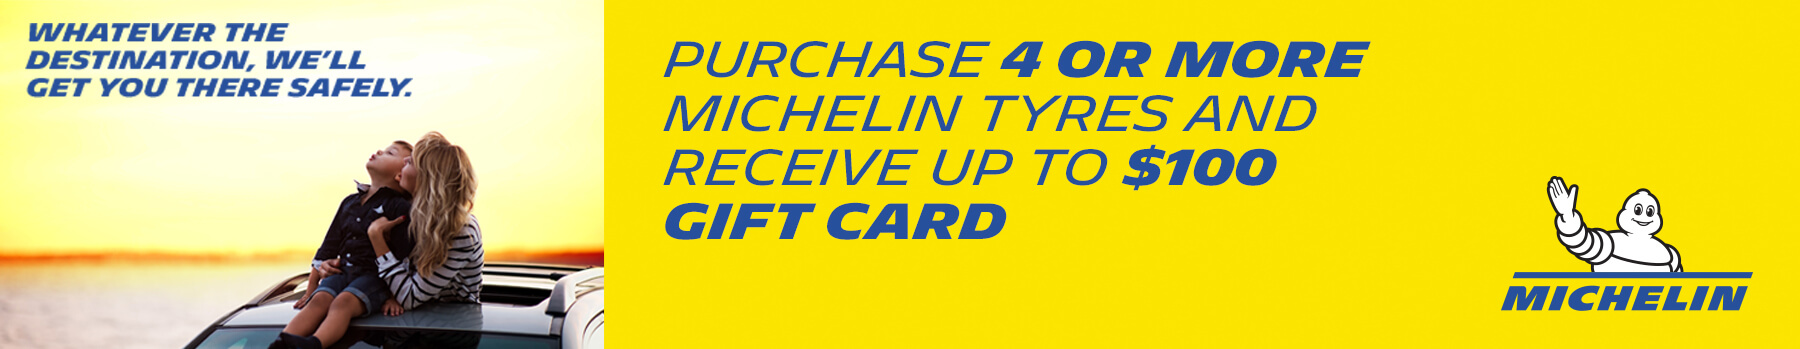 Buy 4 or more Michelin tyres and receive up to $100 gift card